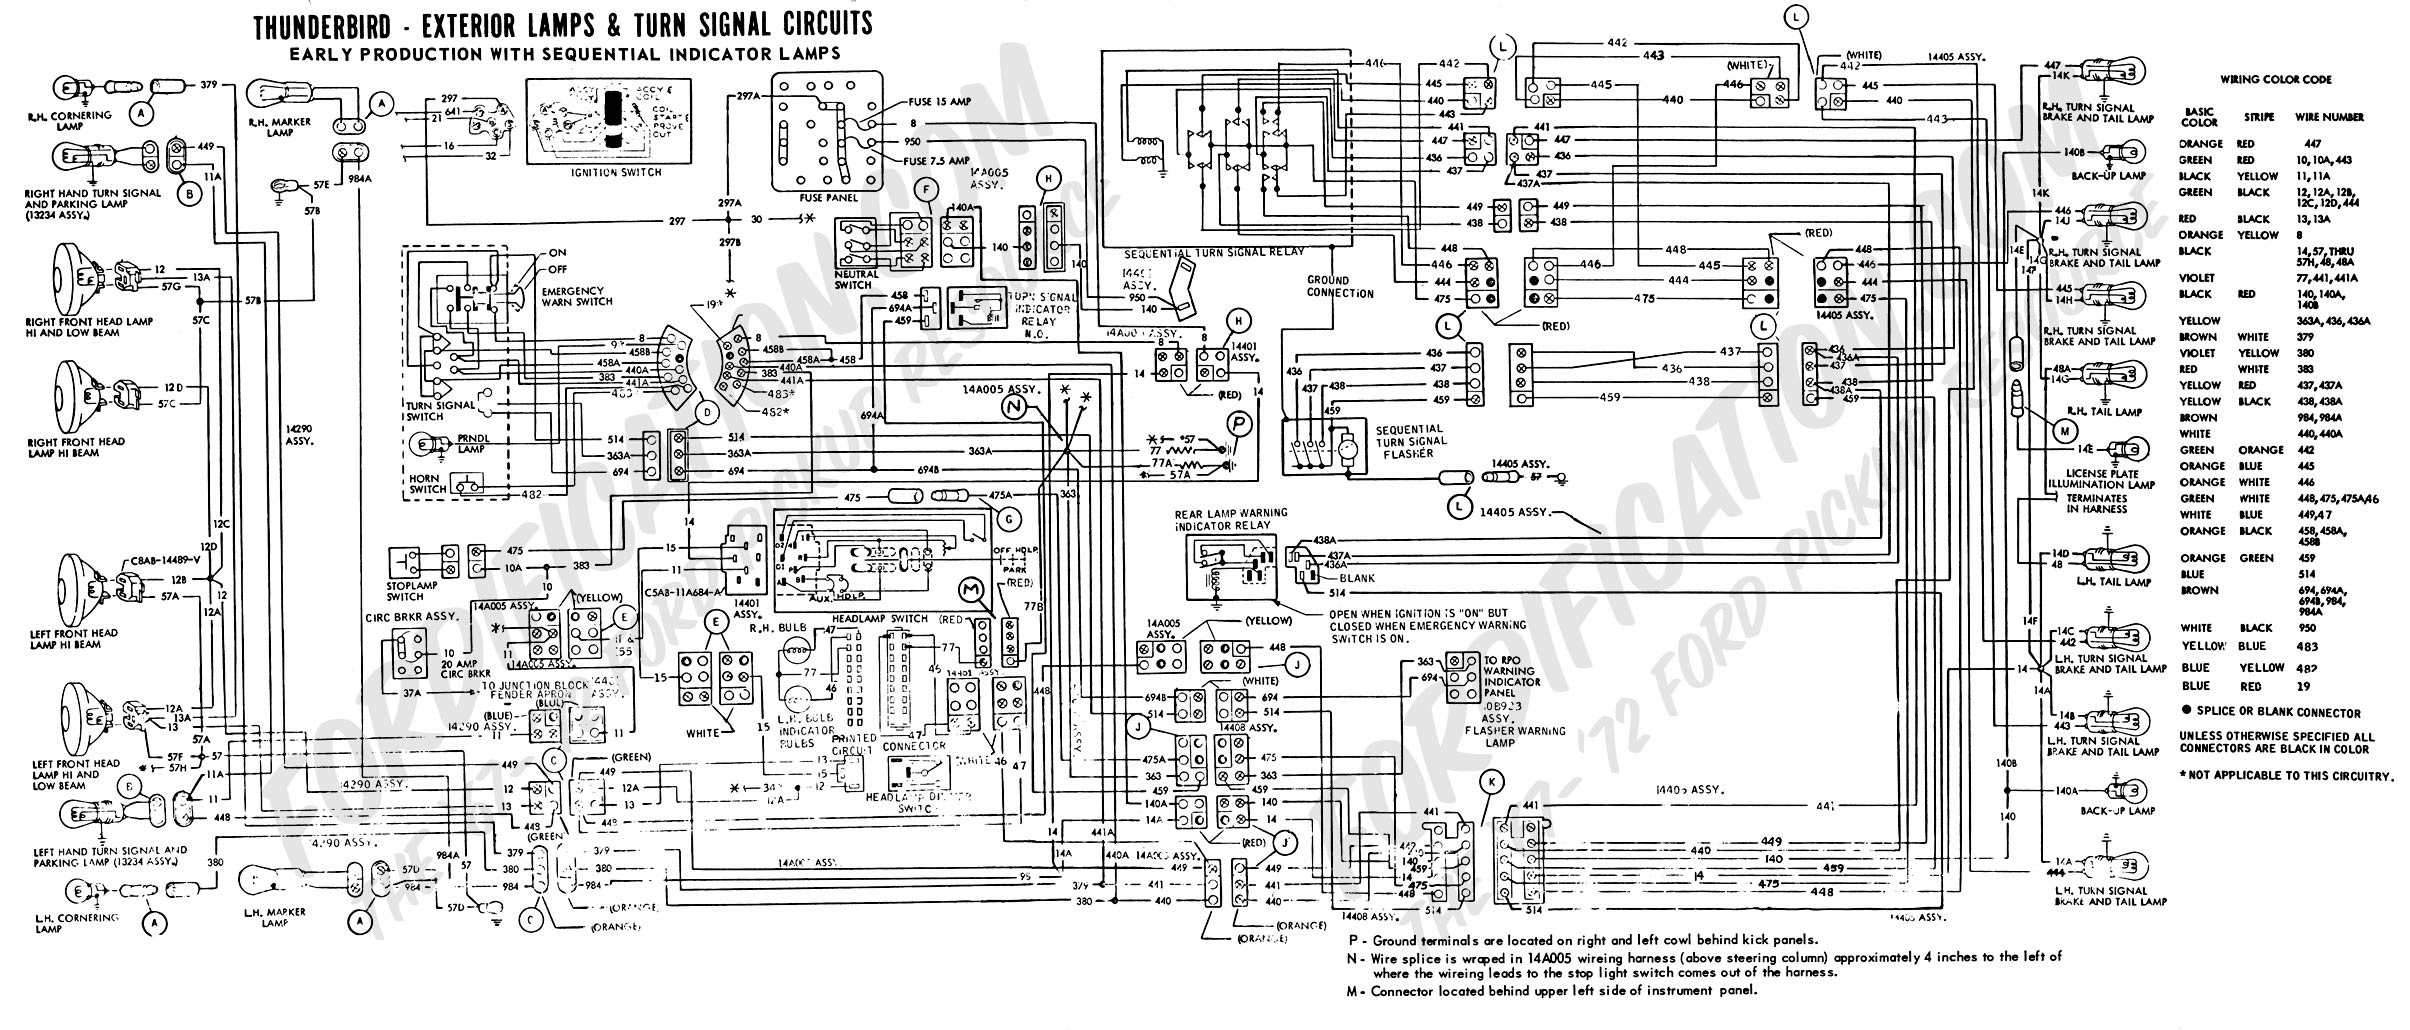 1967 Thunderbird Wiring Diagram Online Manuual Of Ford Diagrams Completed Rh 15 Schwarzgoldtrio De 1964